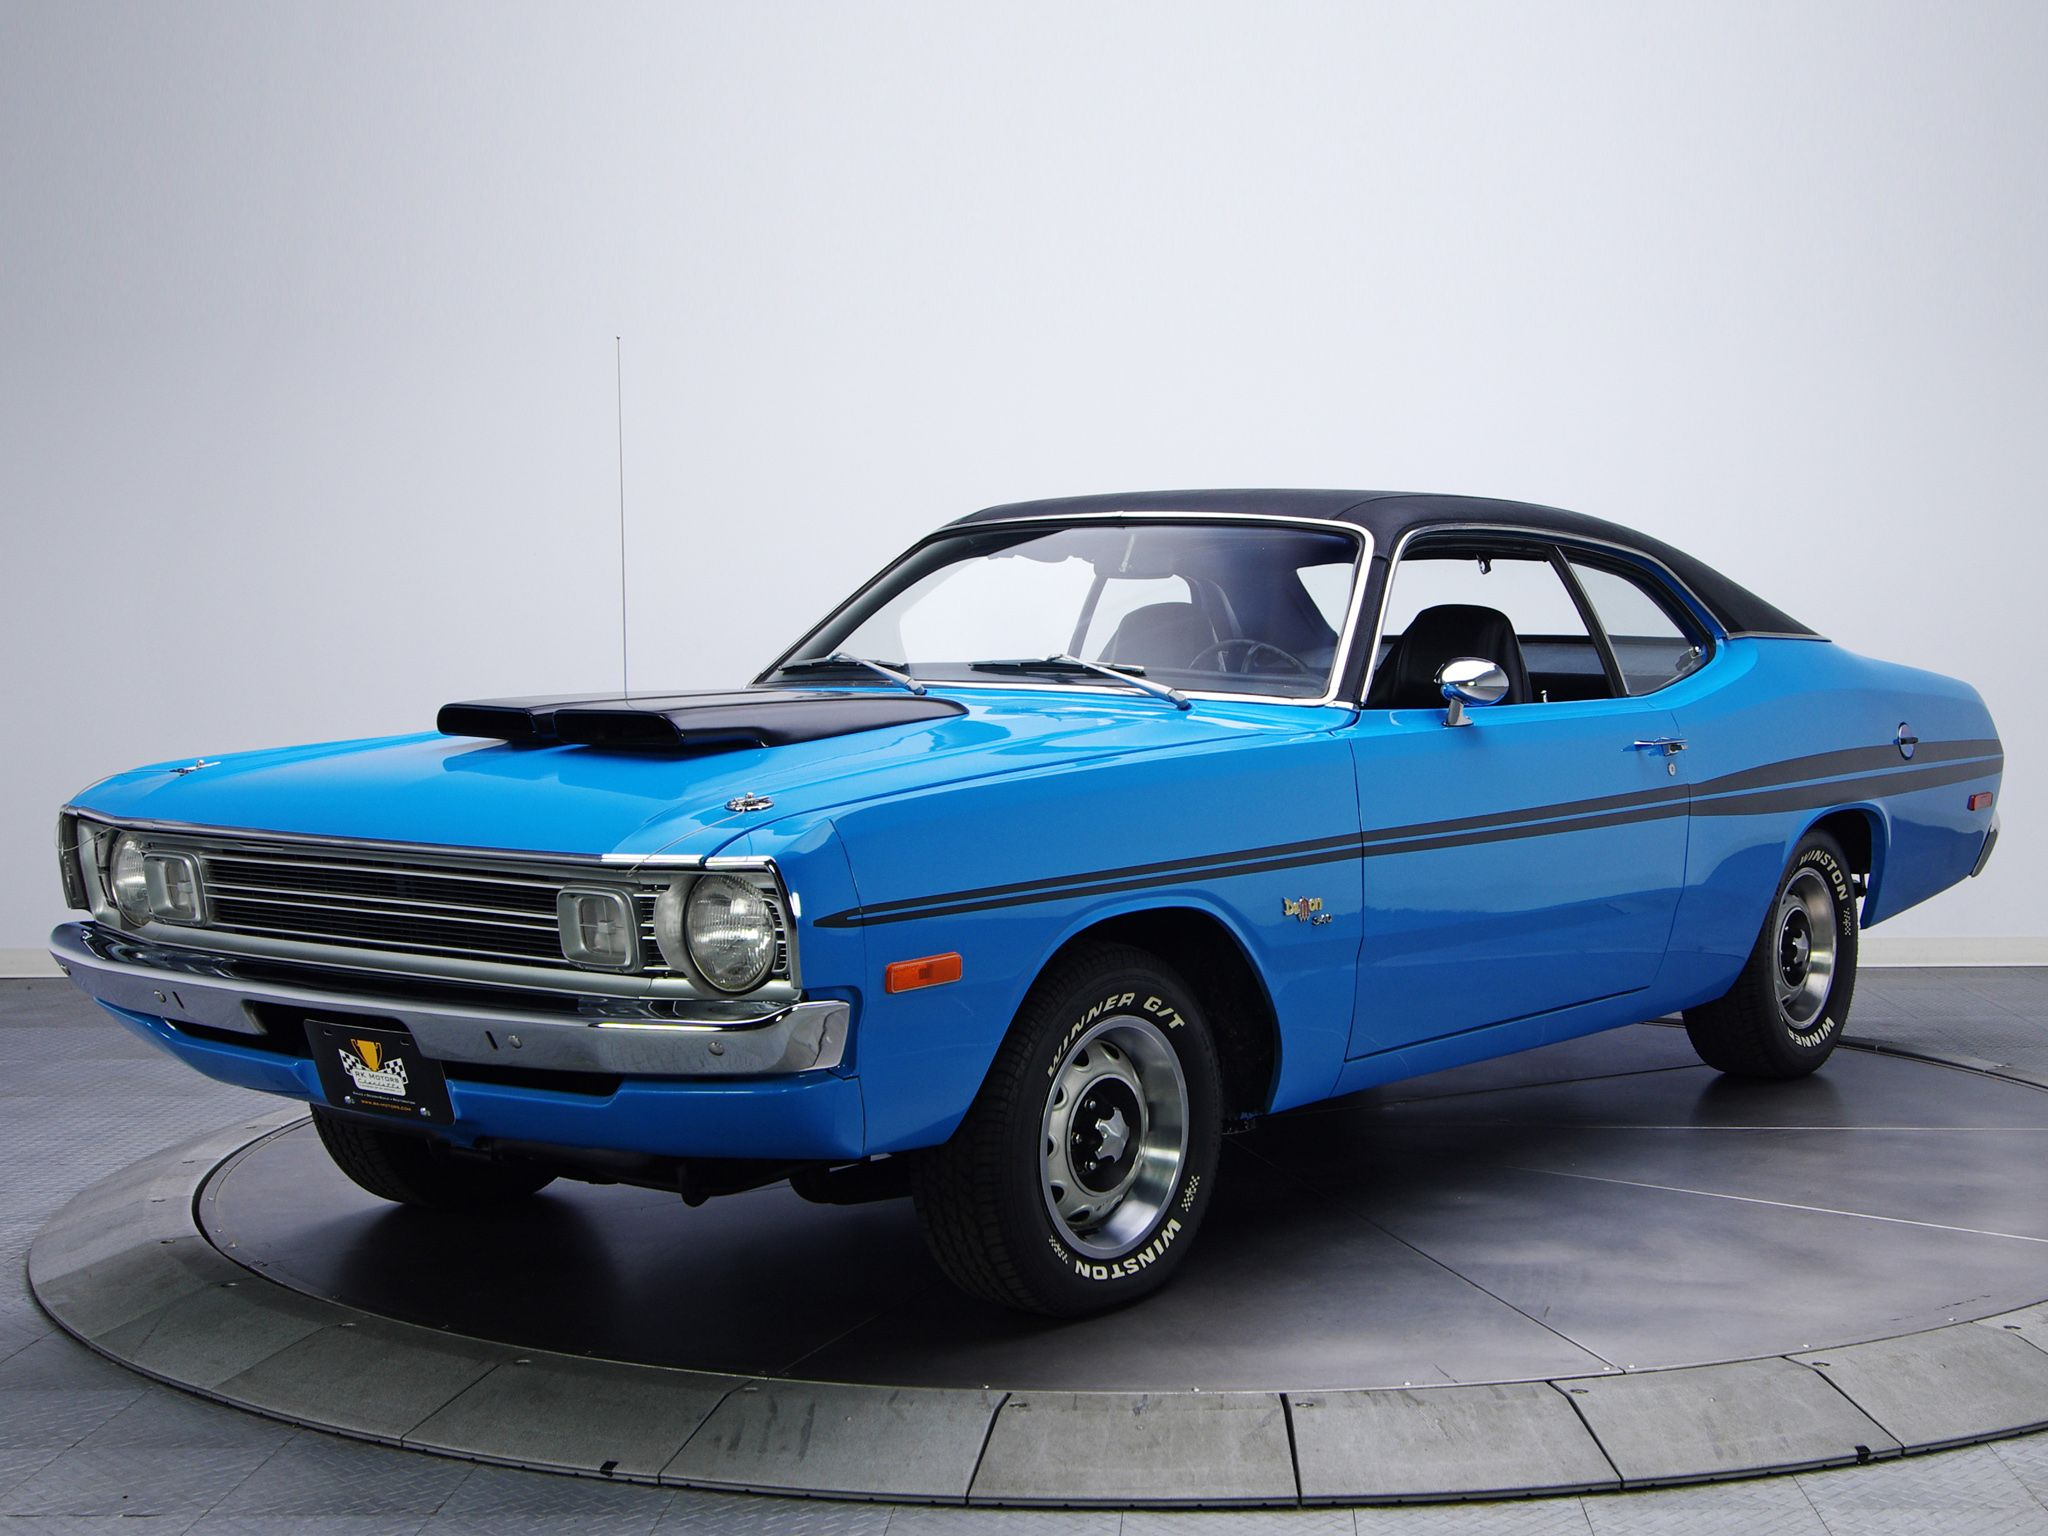 Dodge Dart Demon 340 1972 Wallpaper Free